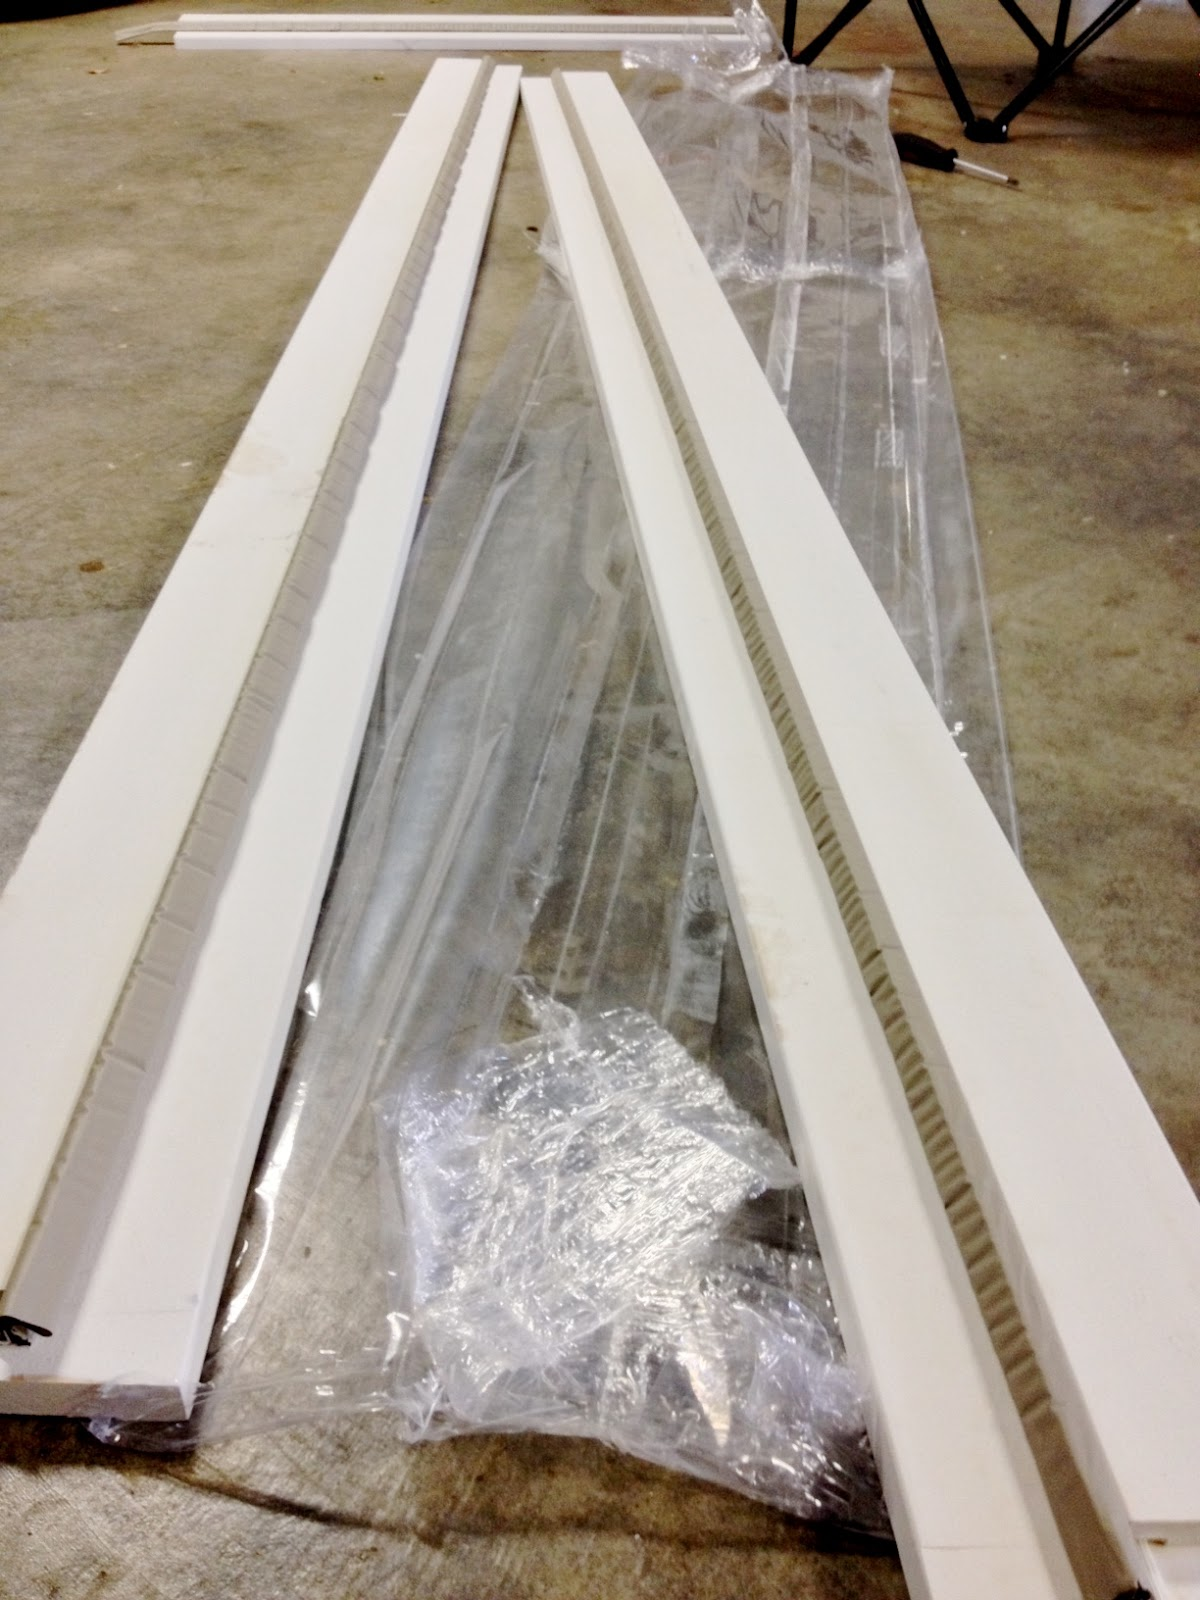 Superior Exterior Door Frame Kit Pictures To Pin On Pinterest PinsDaddy Door . Entry Door  Frame Kits Great Pictures